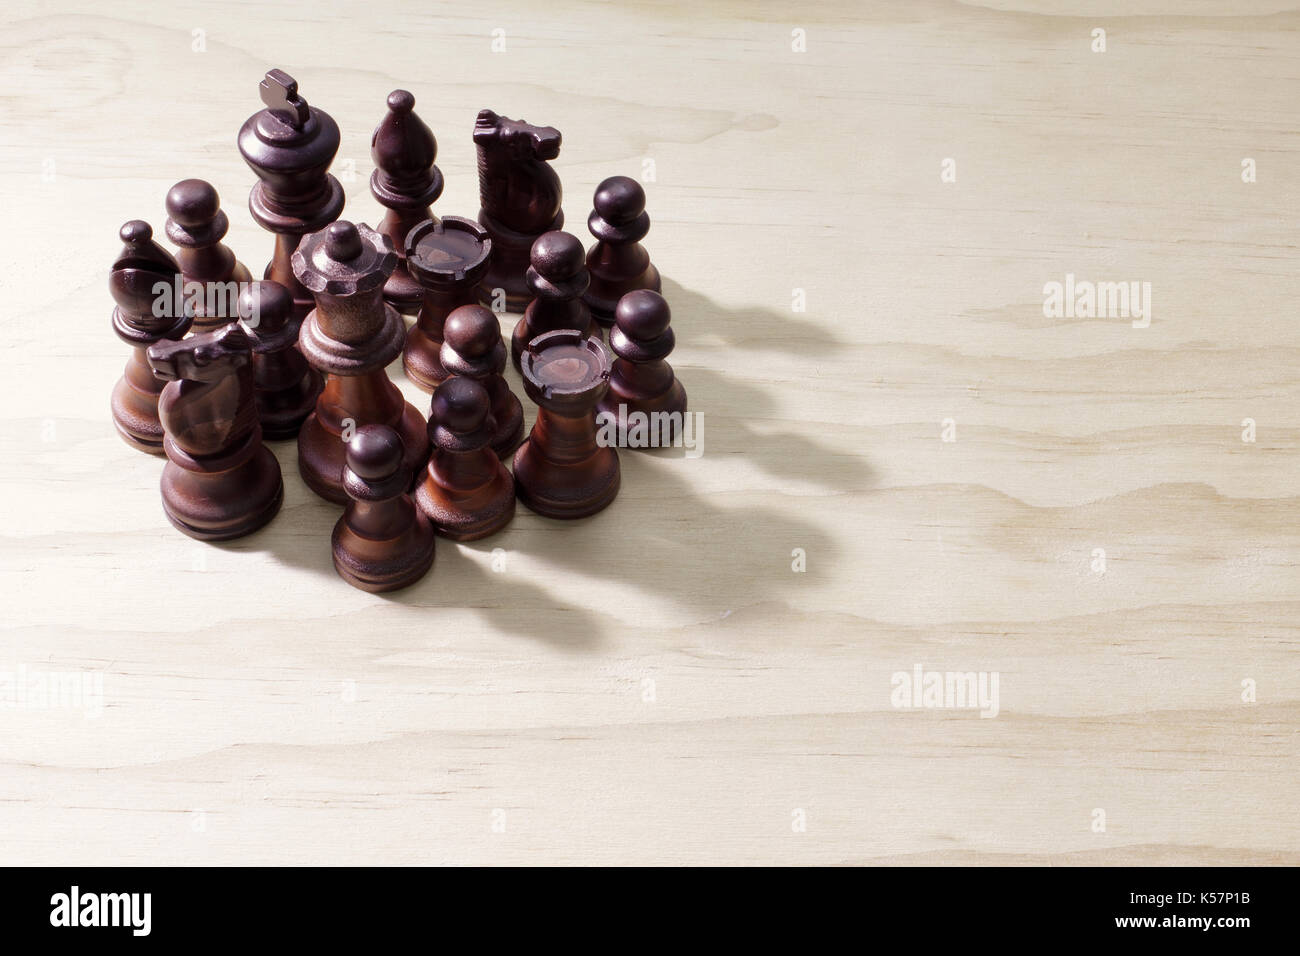 Chess Pieces on Wooden Background - Stock Image